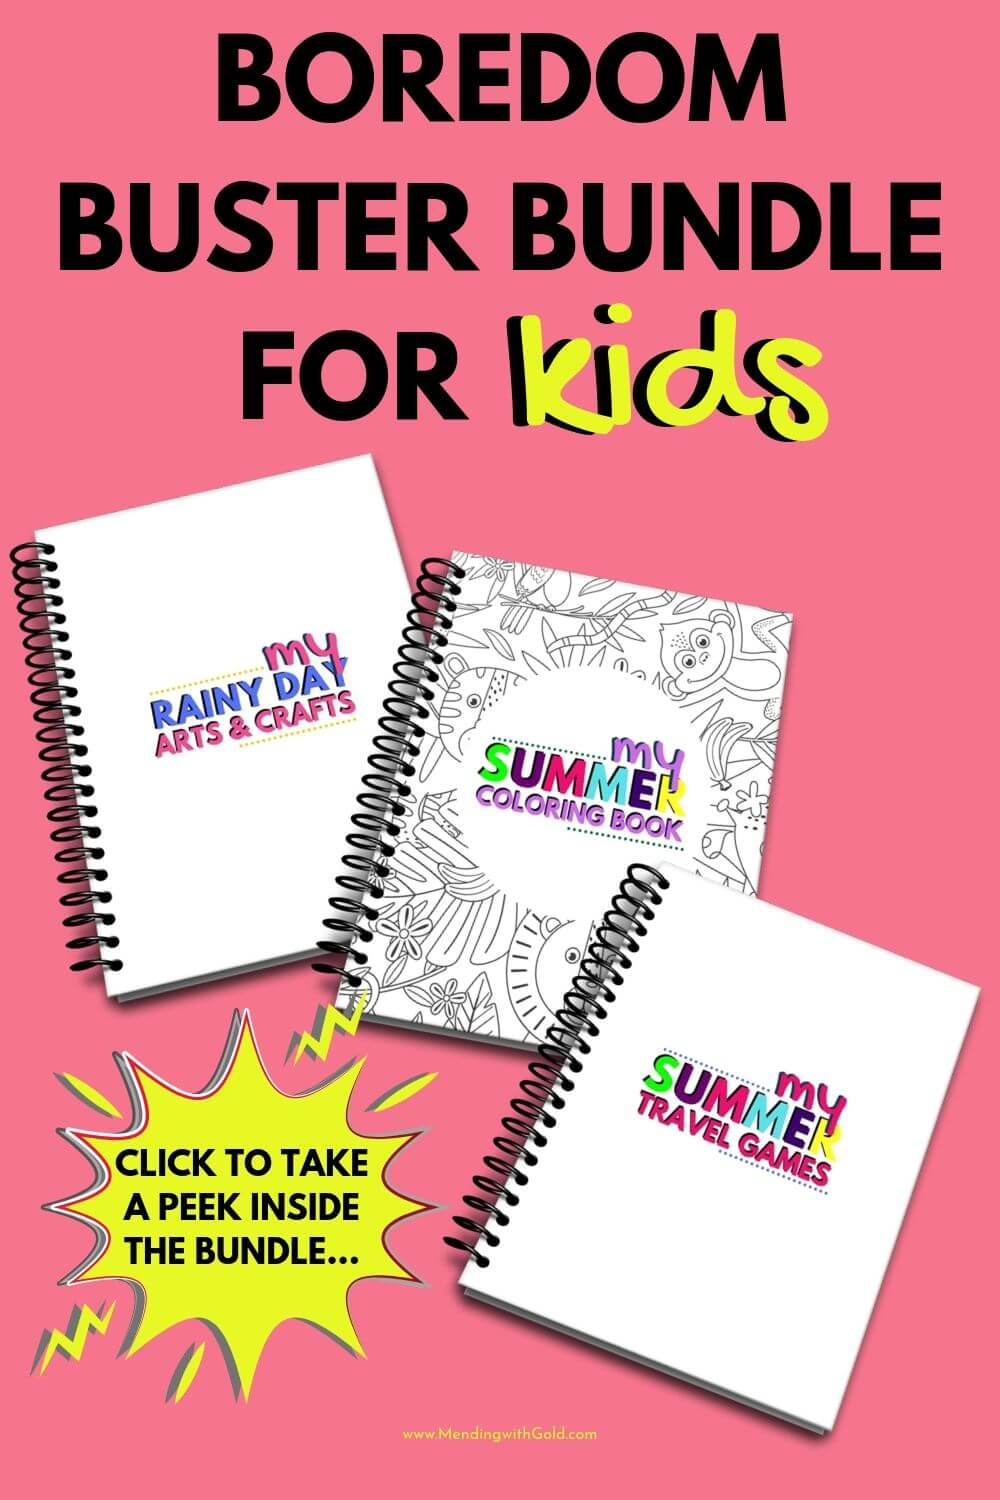 boredom buster bundle for kids image